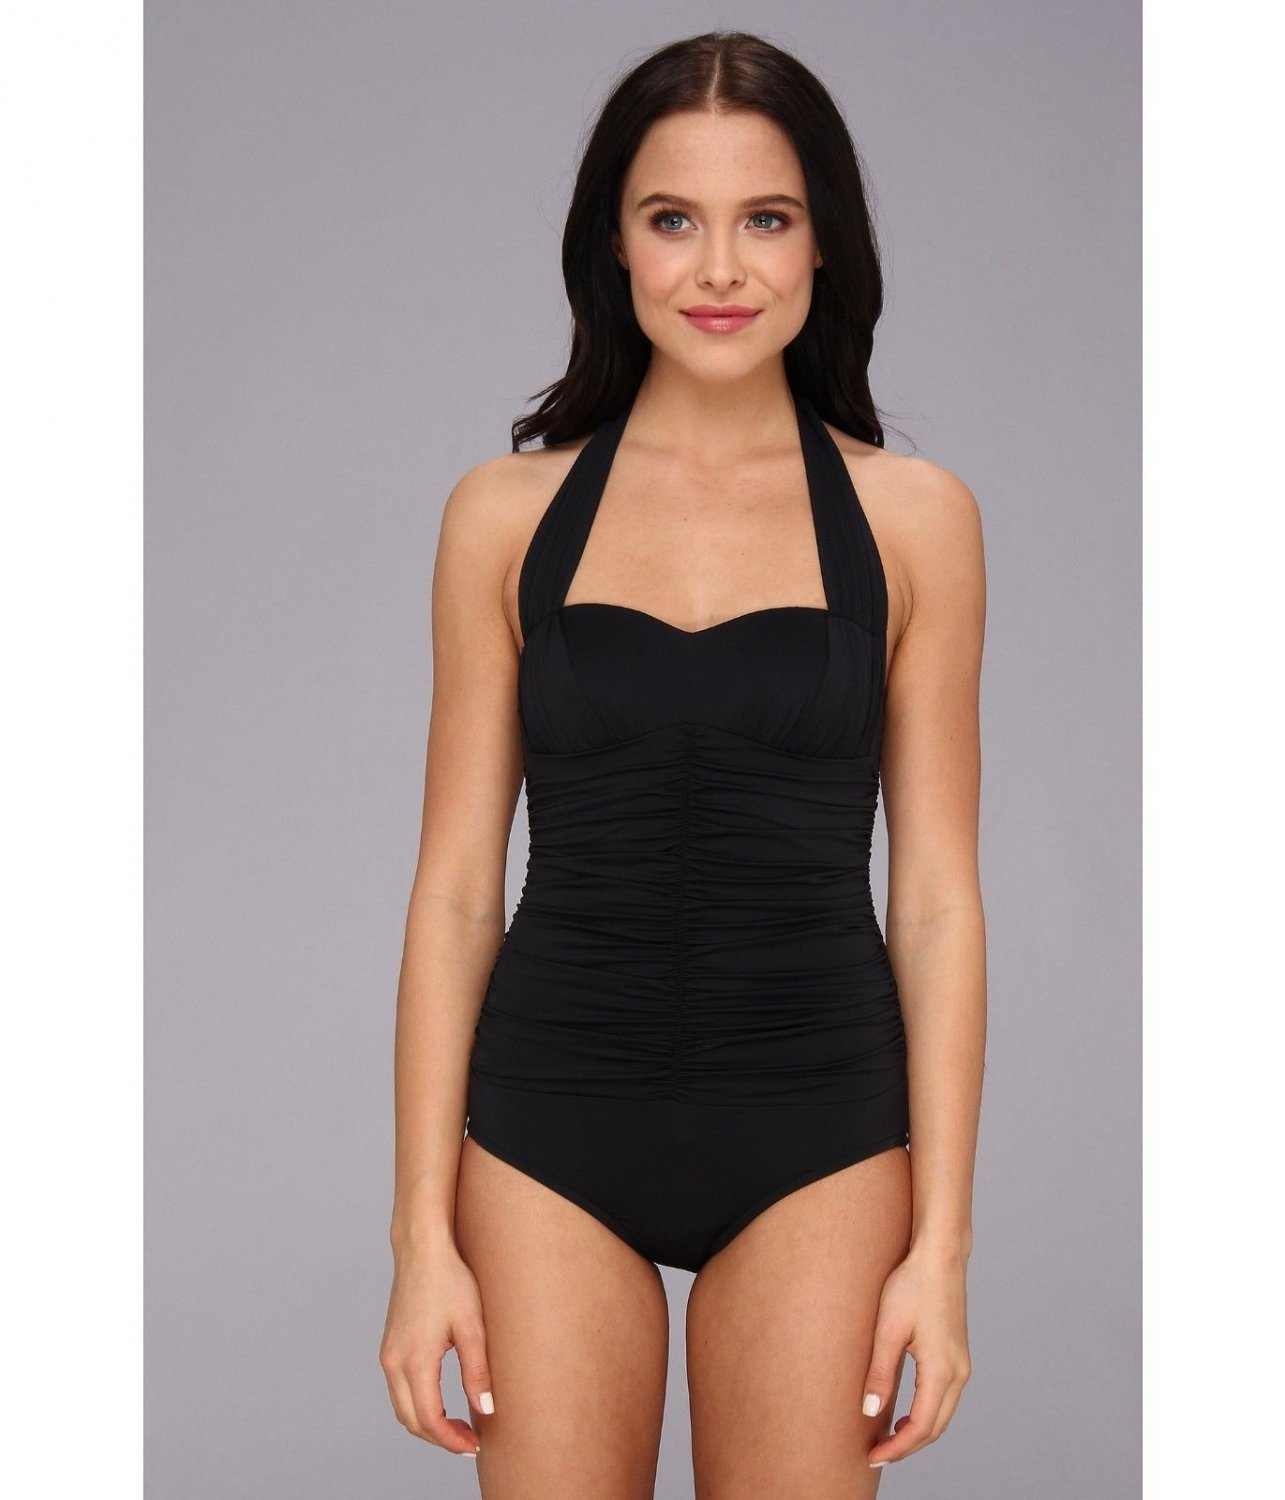 ew BADGLEY MISCHKA swimsuit 8 shirred down front and back maillot slimming